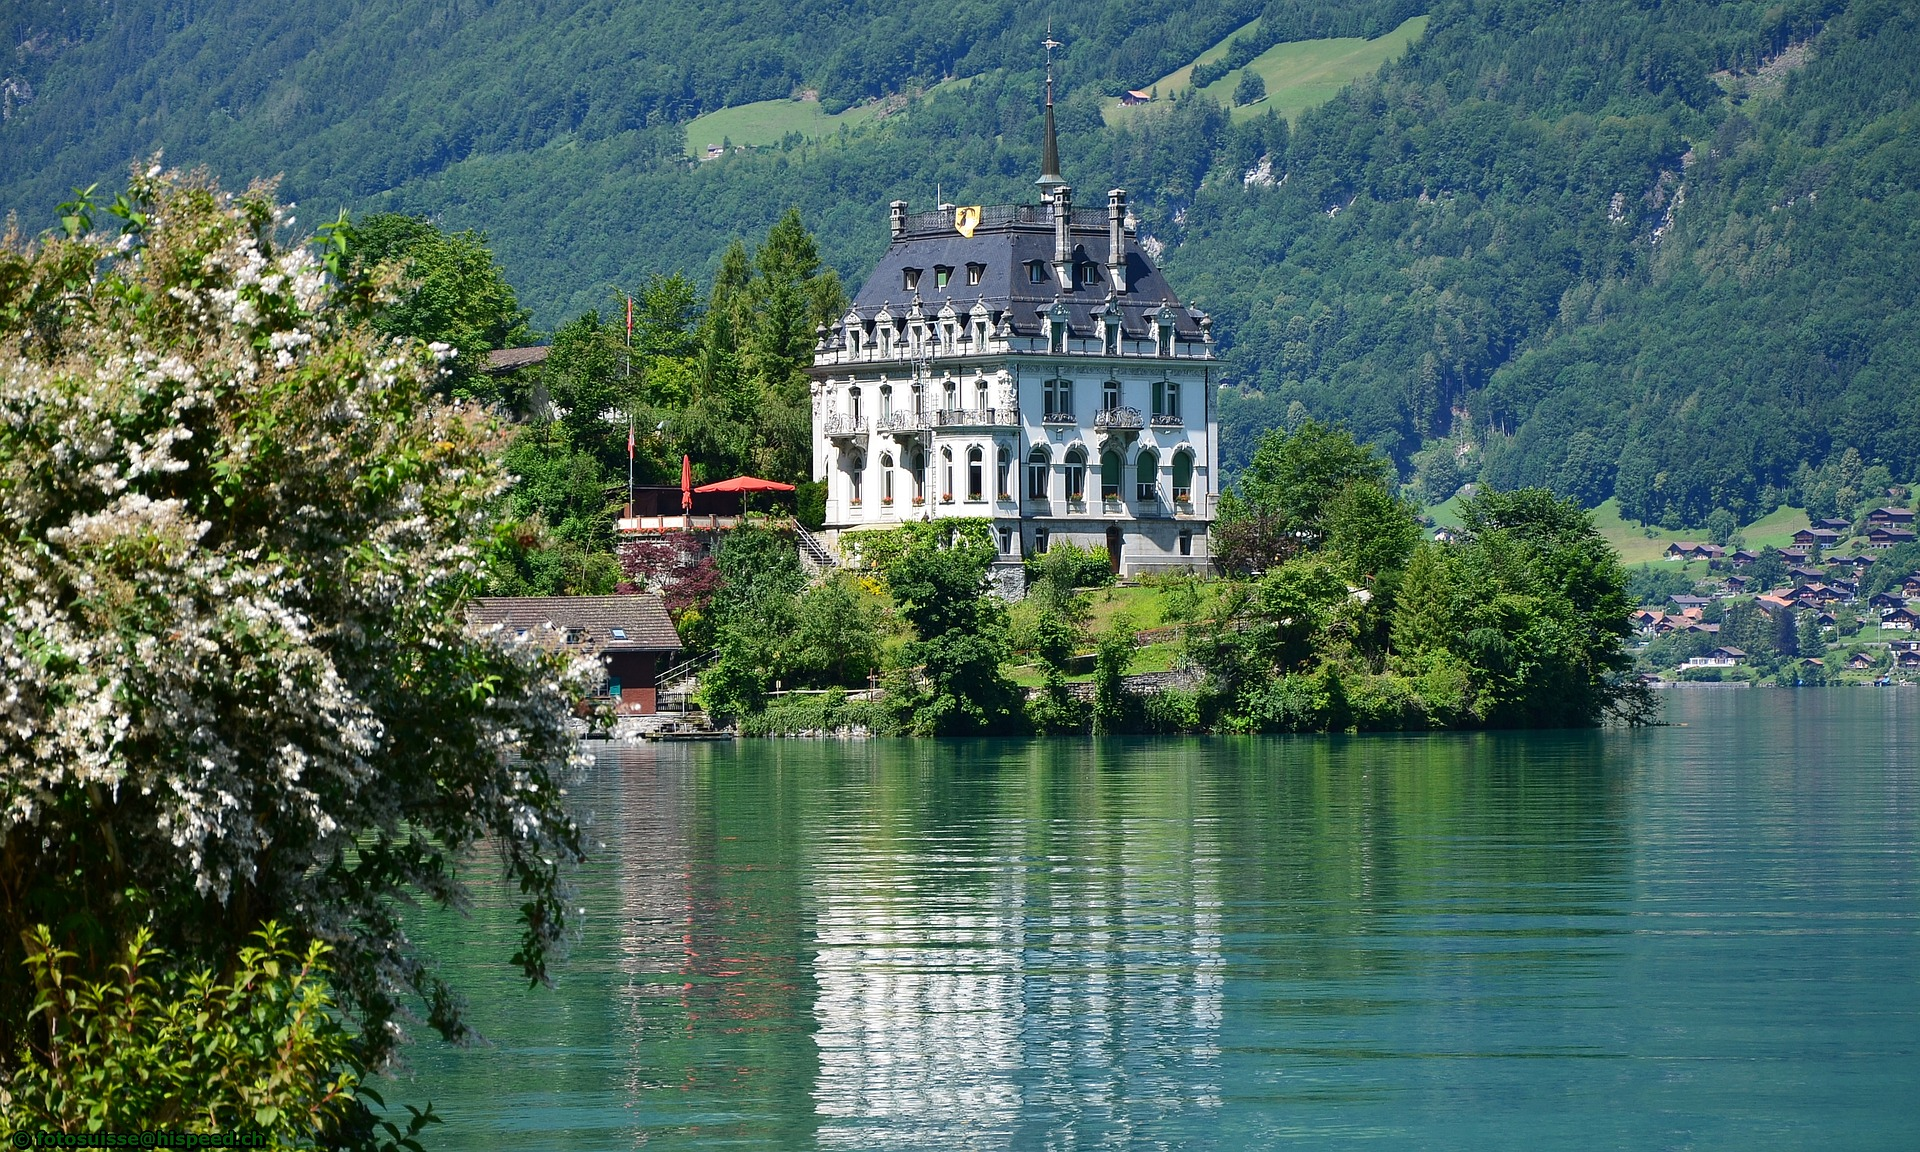 things to do in Interlaken - Iseltwald